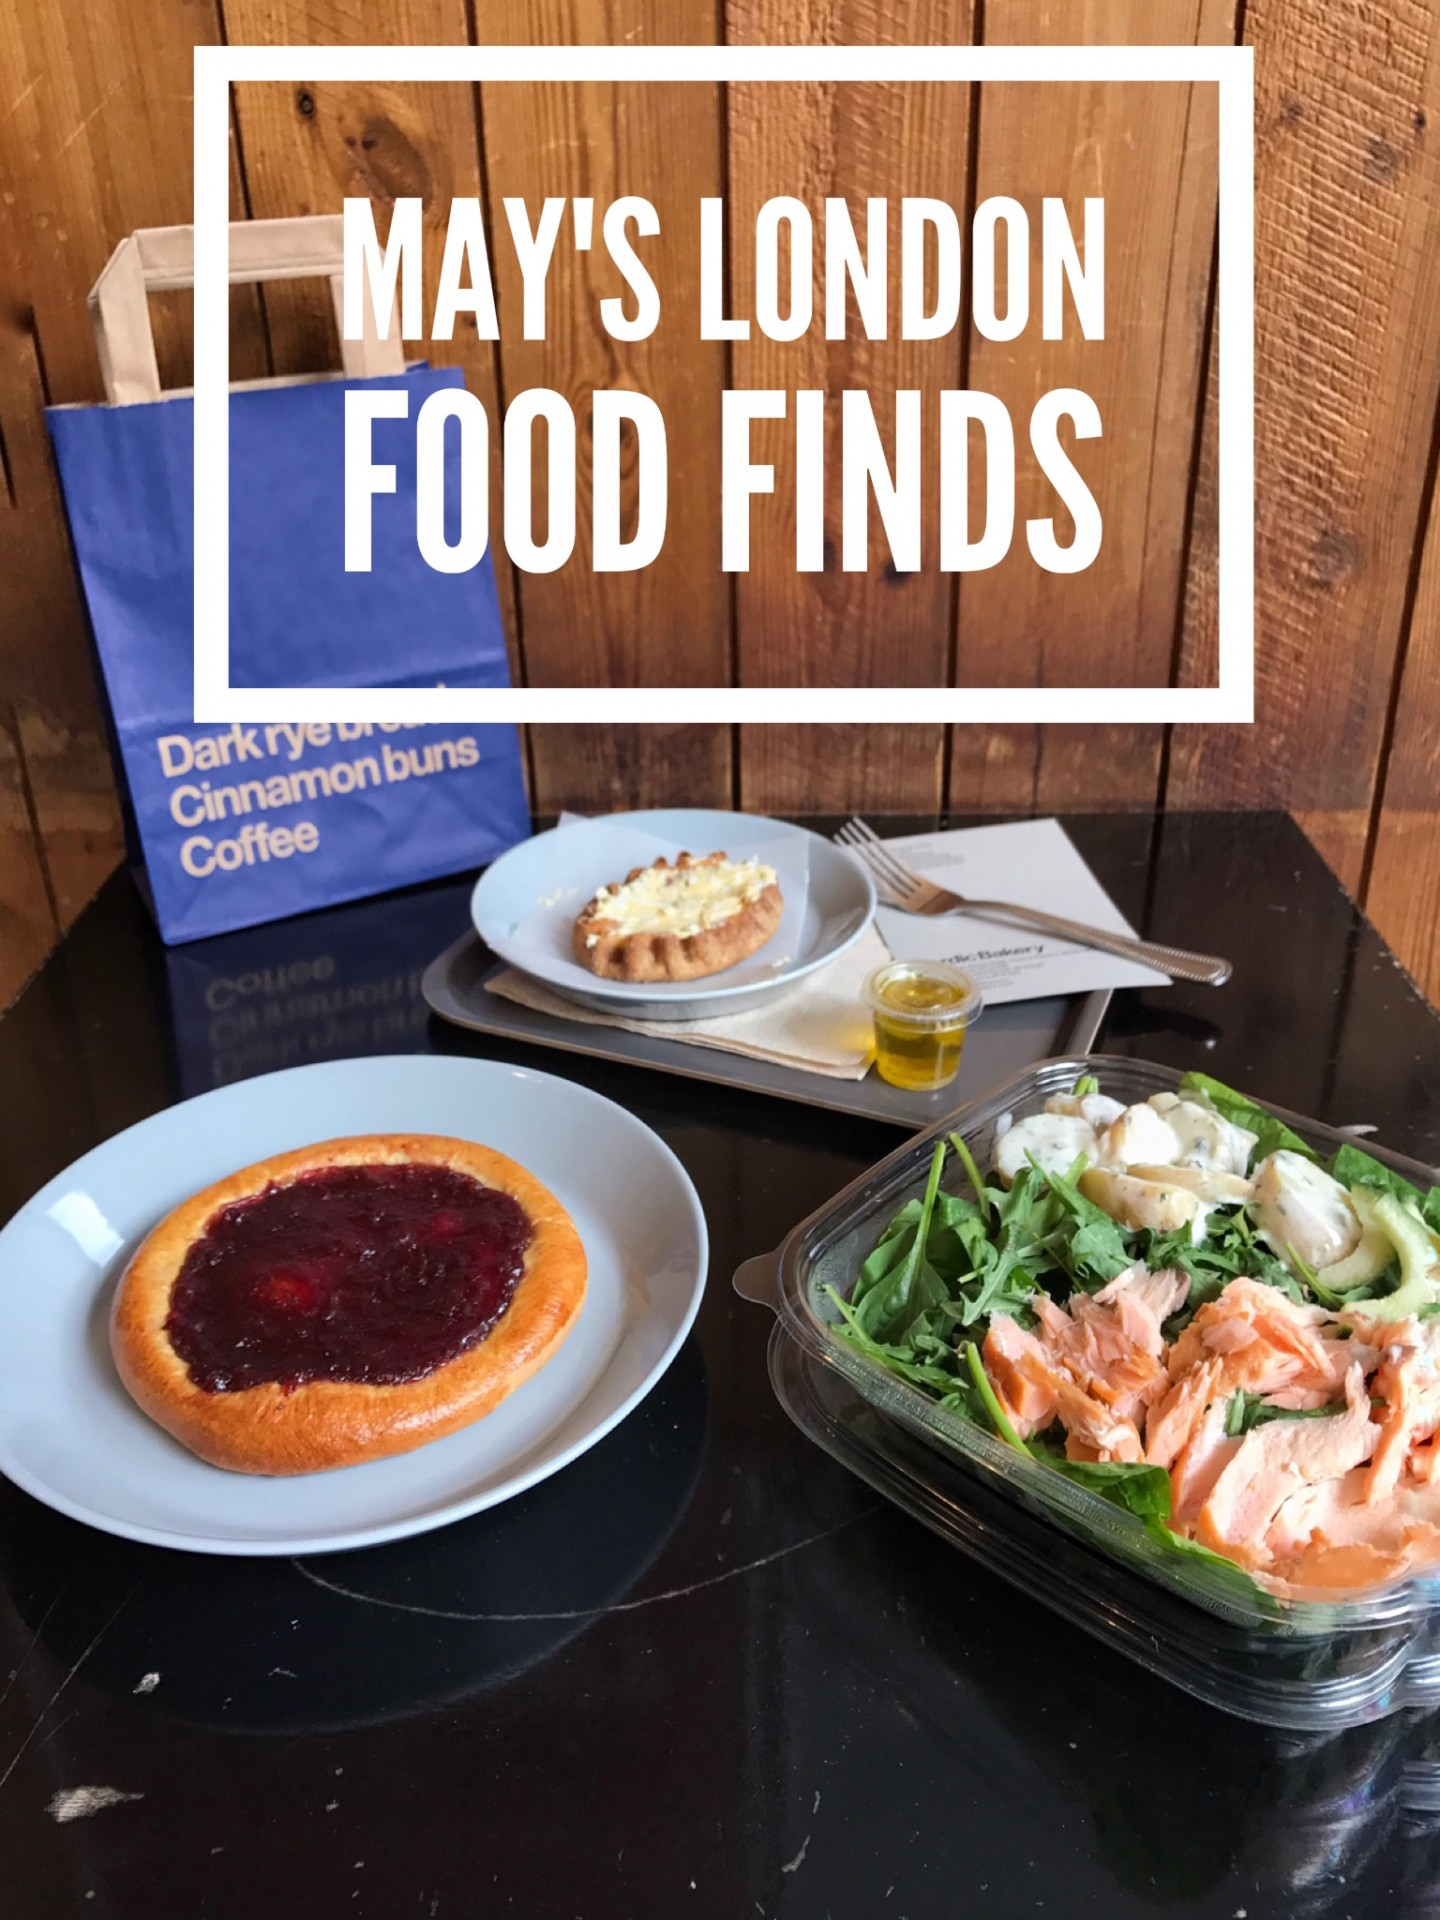 May's London Food Finds 2018